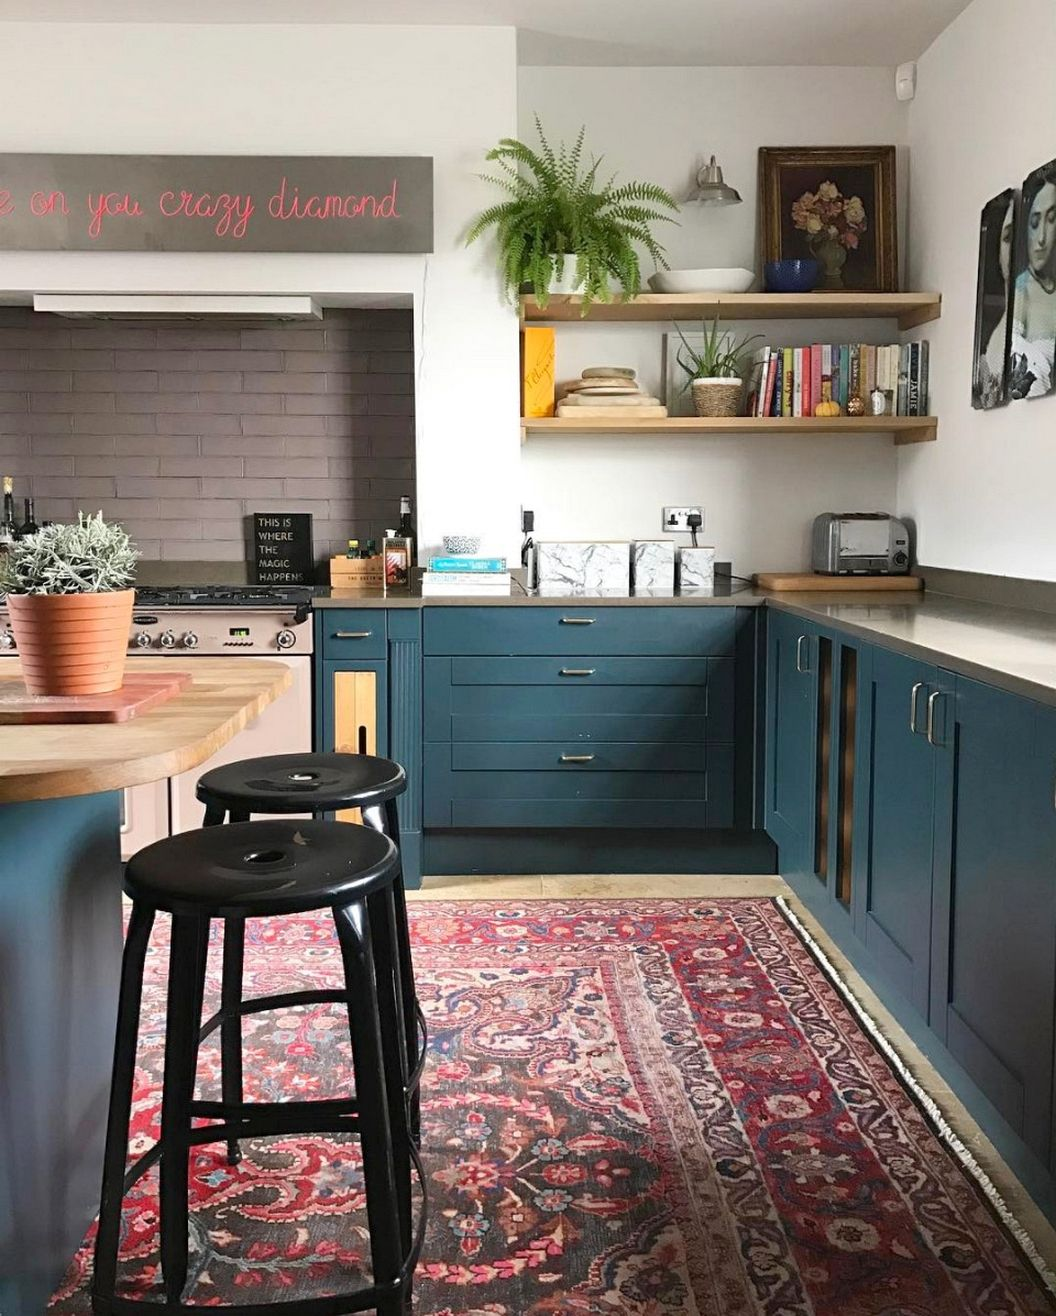 111 Eclectic Kitchen Design, Ideas, Remodel, And Decor For